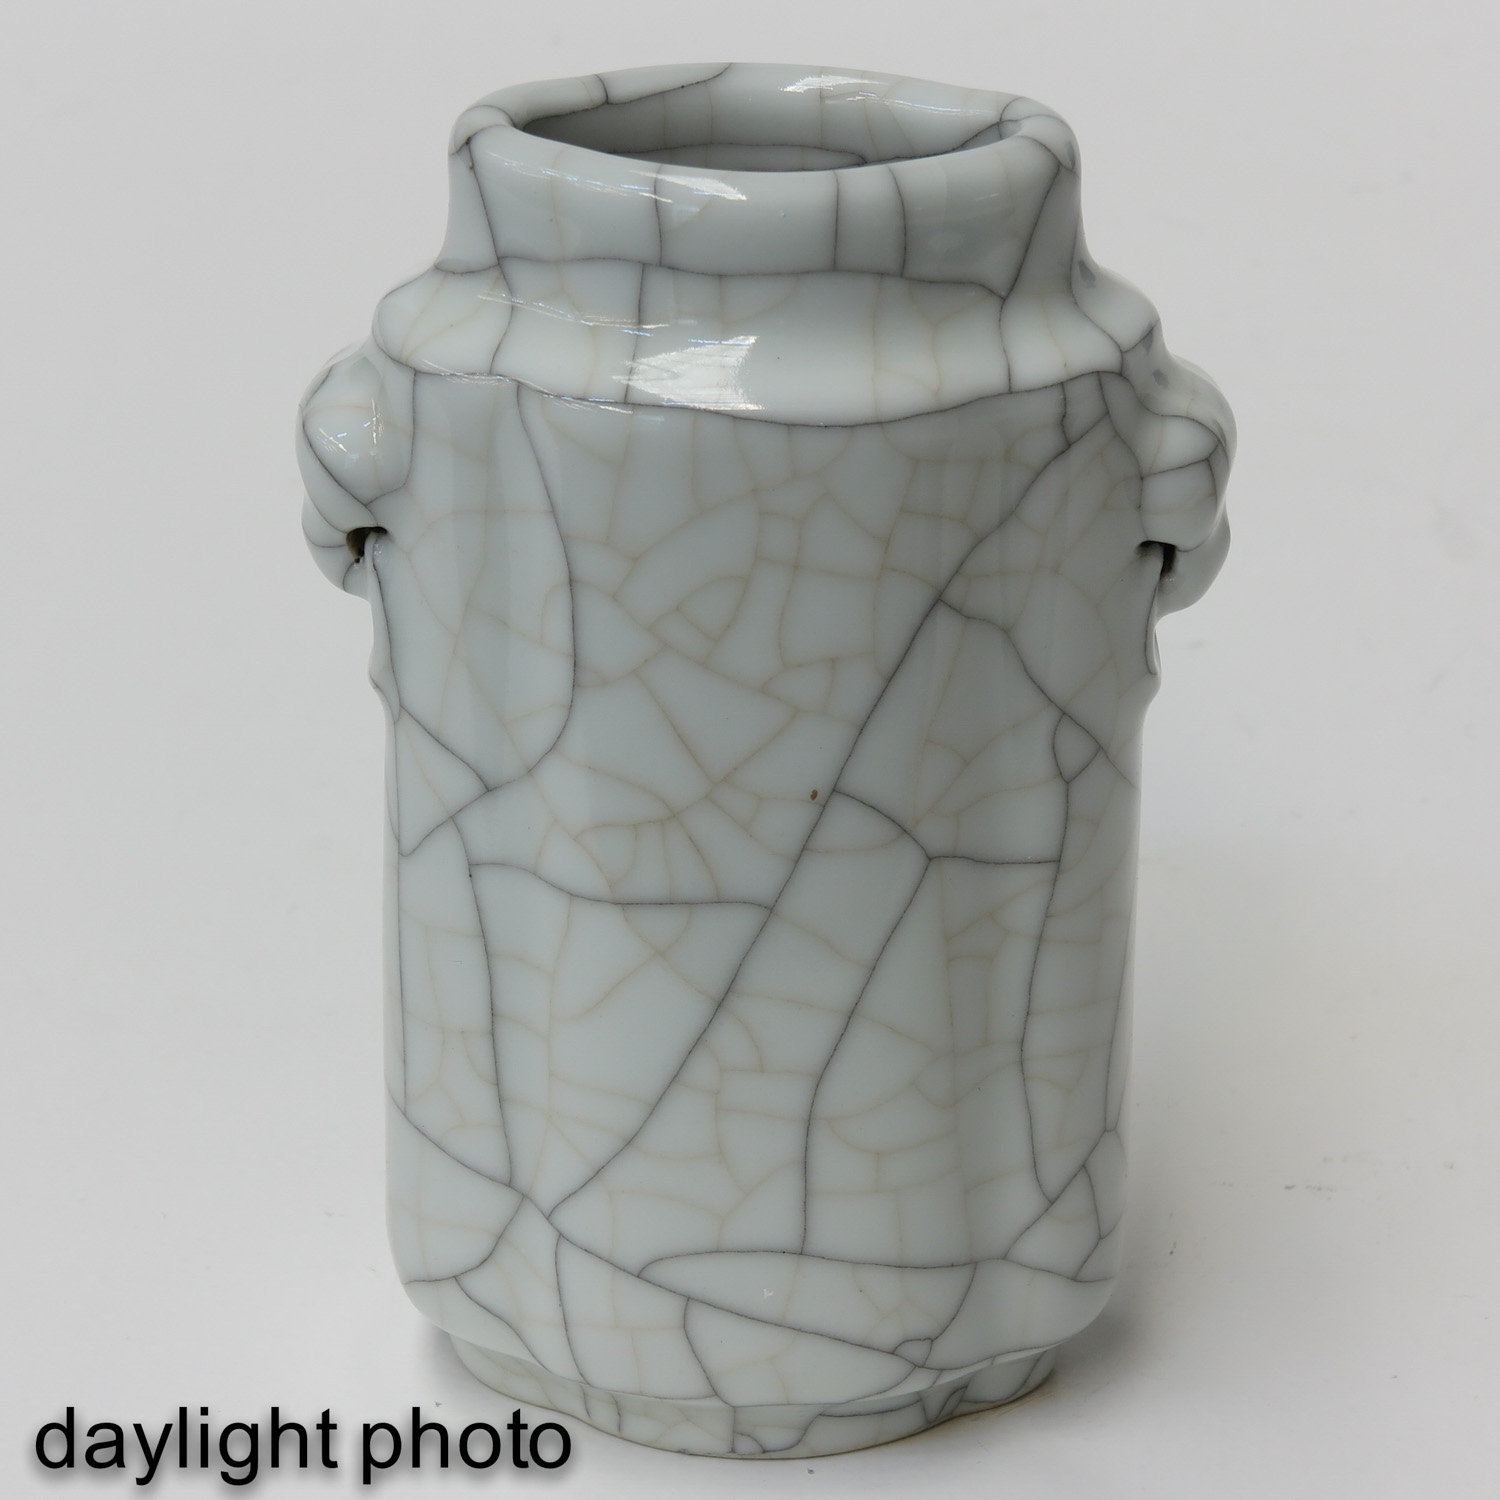 A Crackle Decor Vase - Image 7 of 9